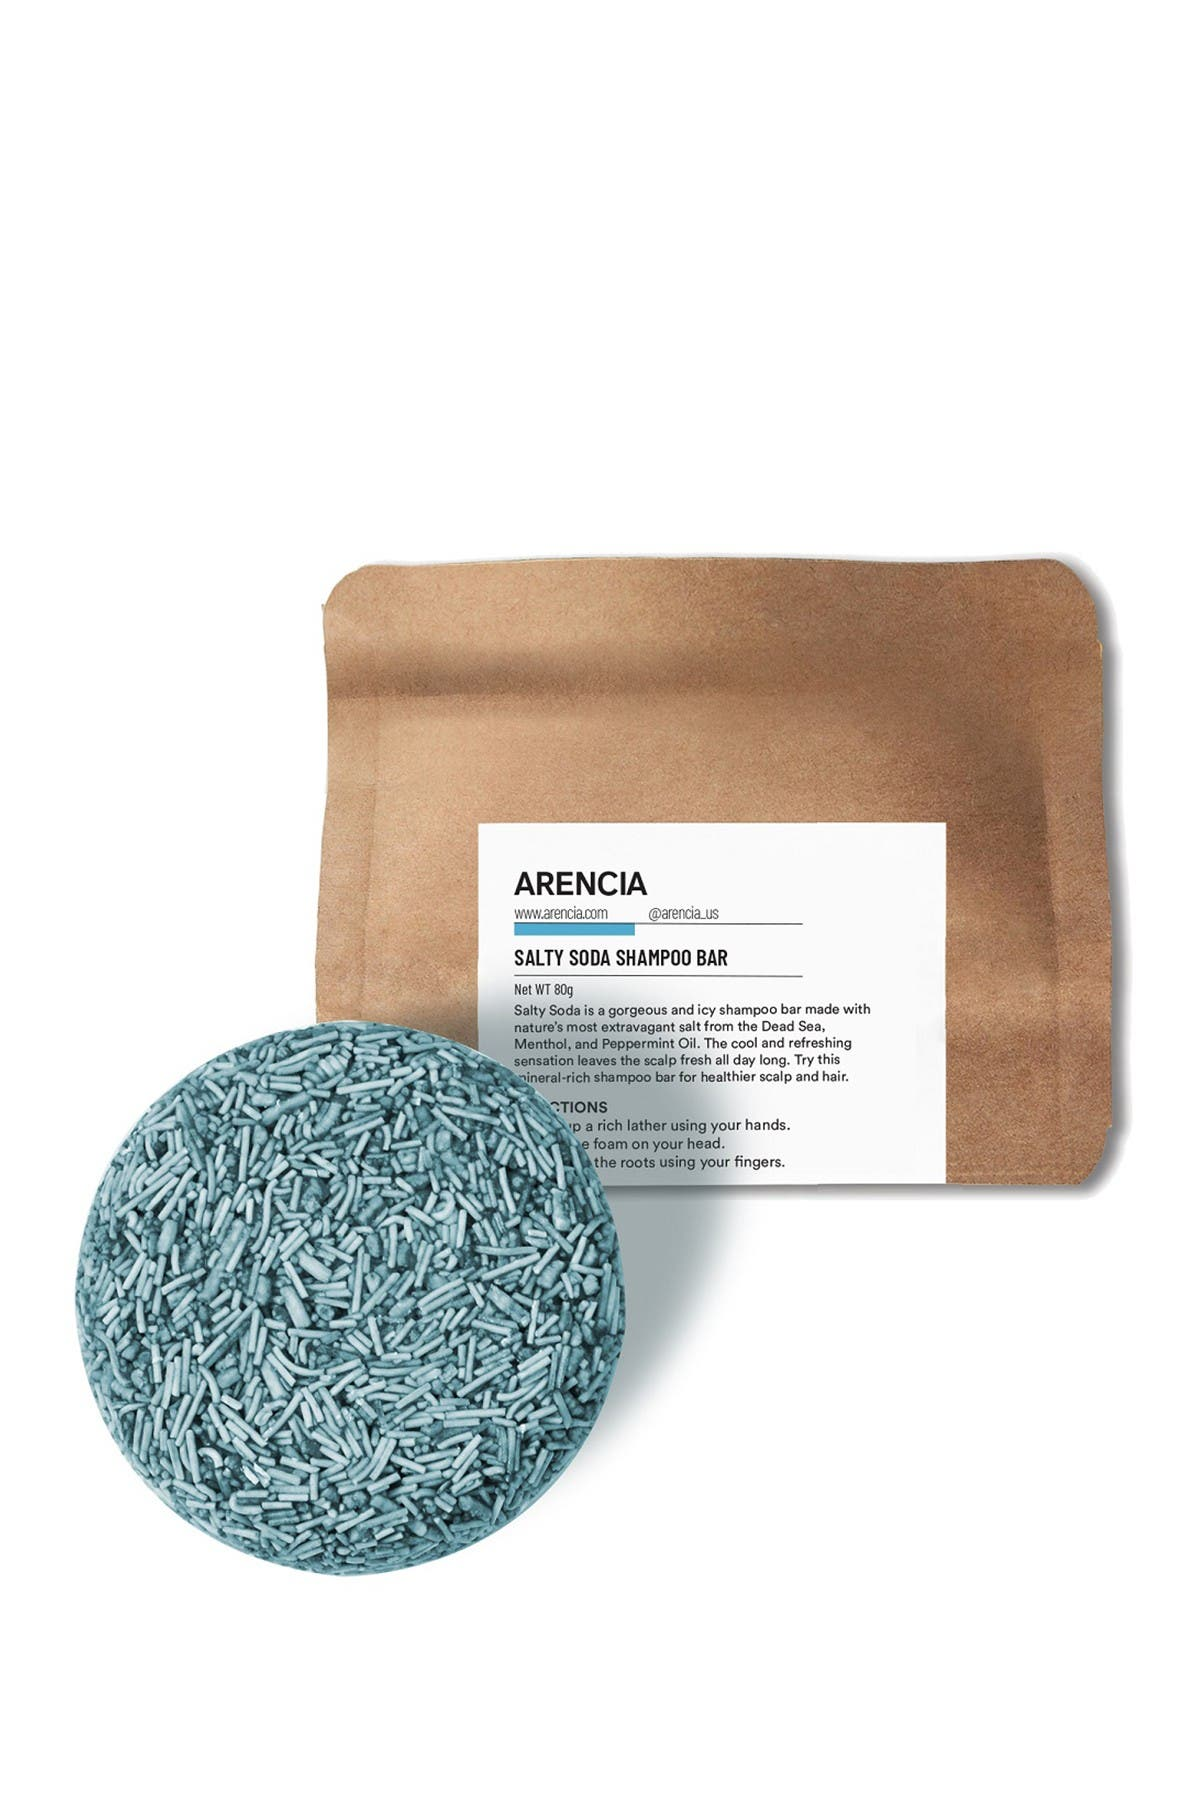 Image of Arencia Salty Soda Shampoo Bar